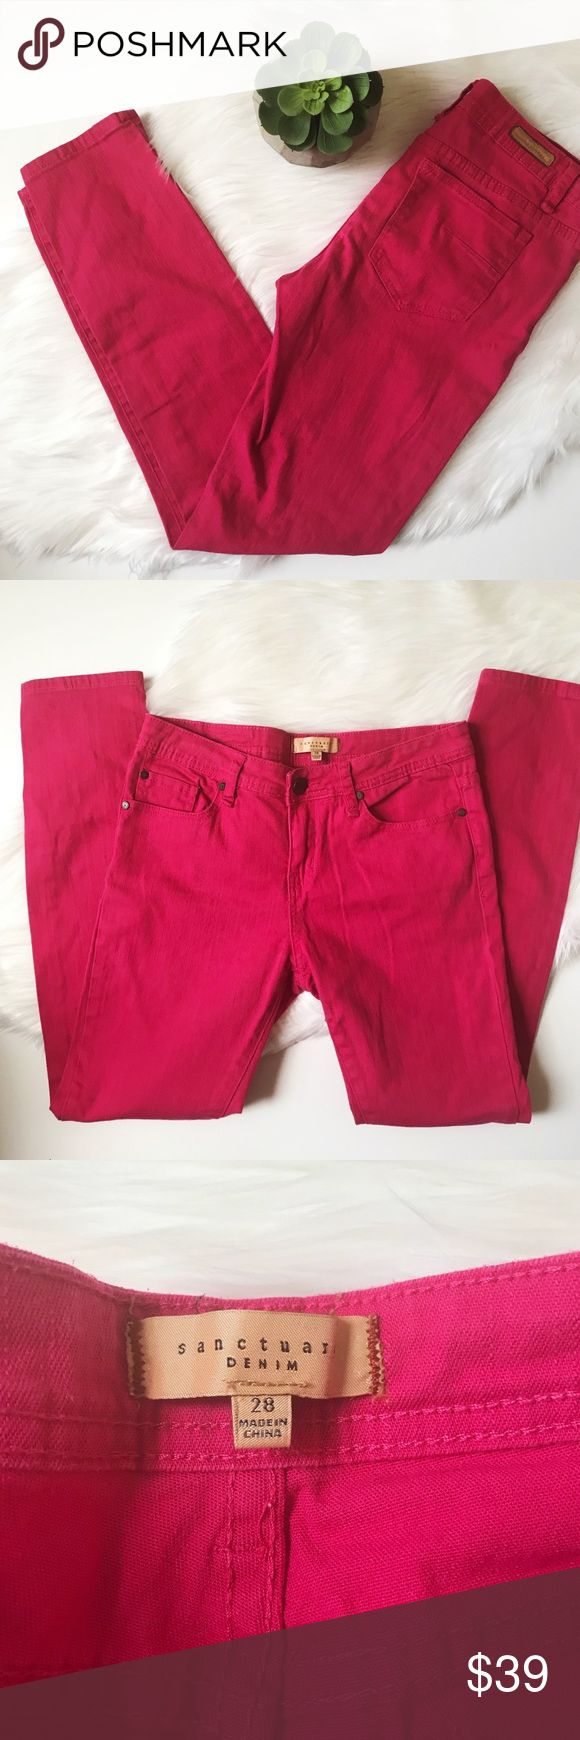 "Anthropologie Sanctuary Hot Pink Skinny Jeans Hot pink fuchsia skinny jeans by Anthro brand Sanctuary. Approximate measurements: Rise 8.5"", inseam 29"". Excellent preowned condition. Adds a pop of color to any outfit and cute for any season! Anthropologie Jeans Skinny"